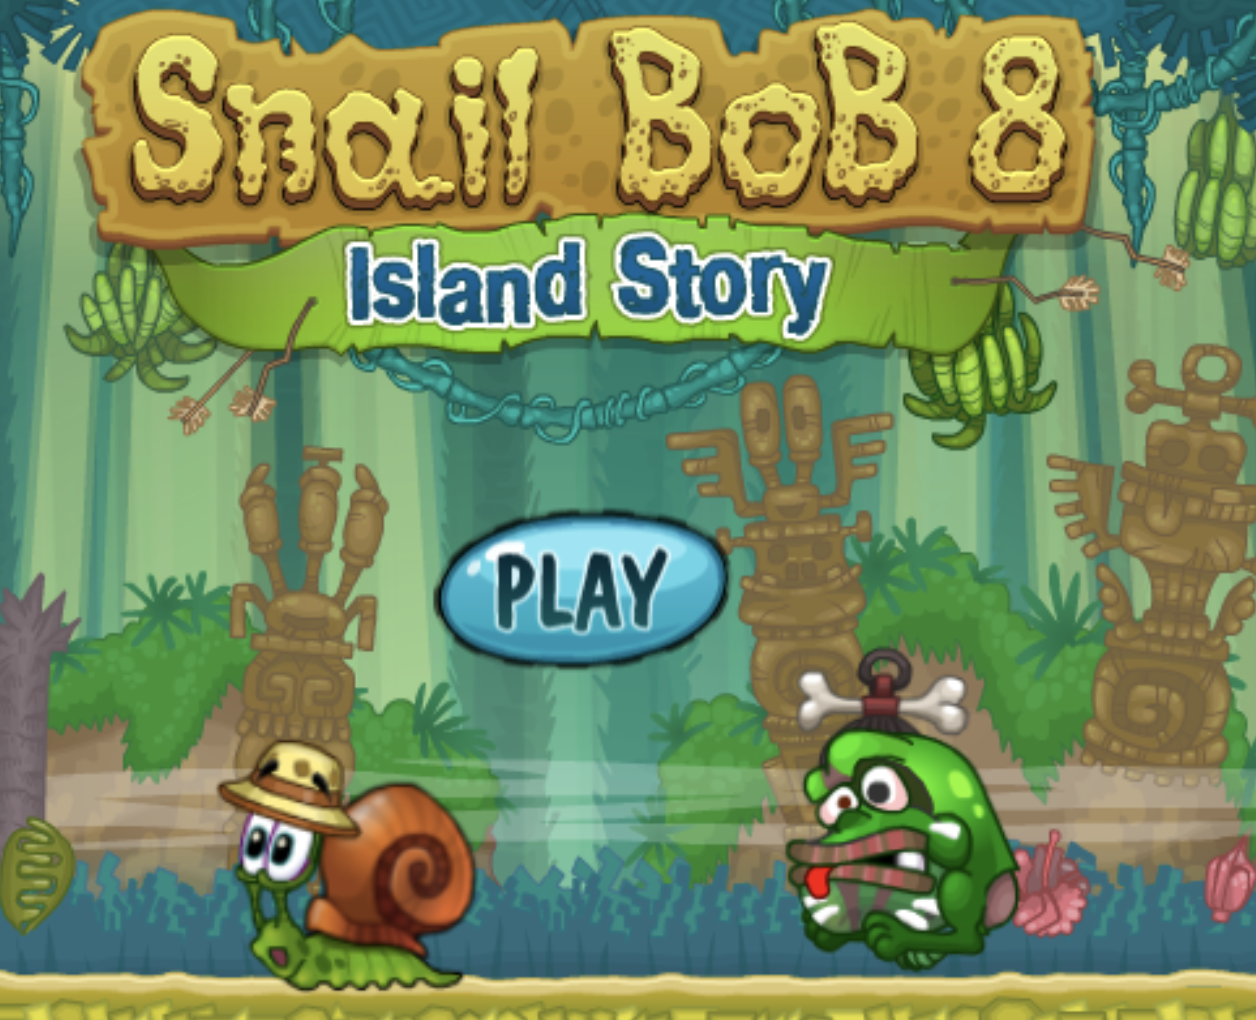 Play Free Online Point And Click Snail Bob 8 Island Story Game Story Games For Kids Story Games Play Free Online Games